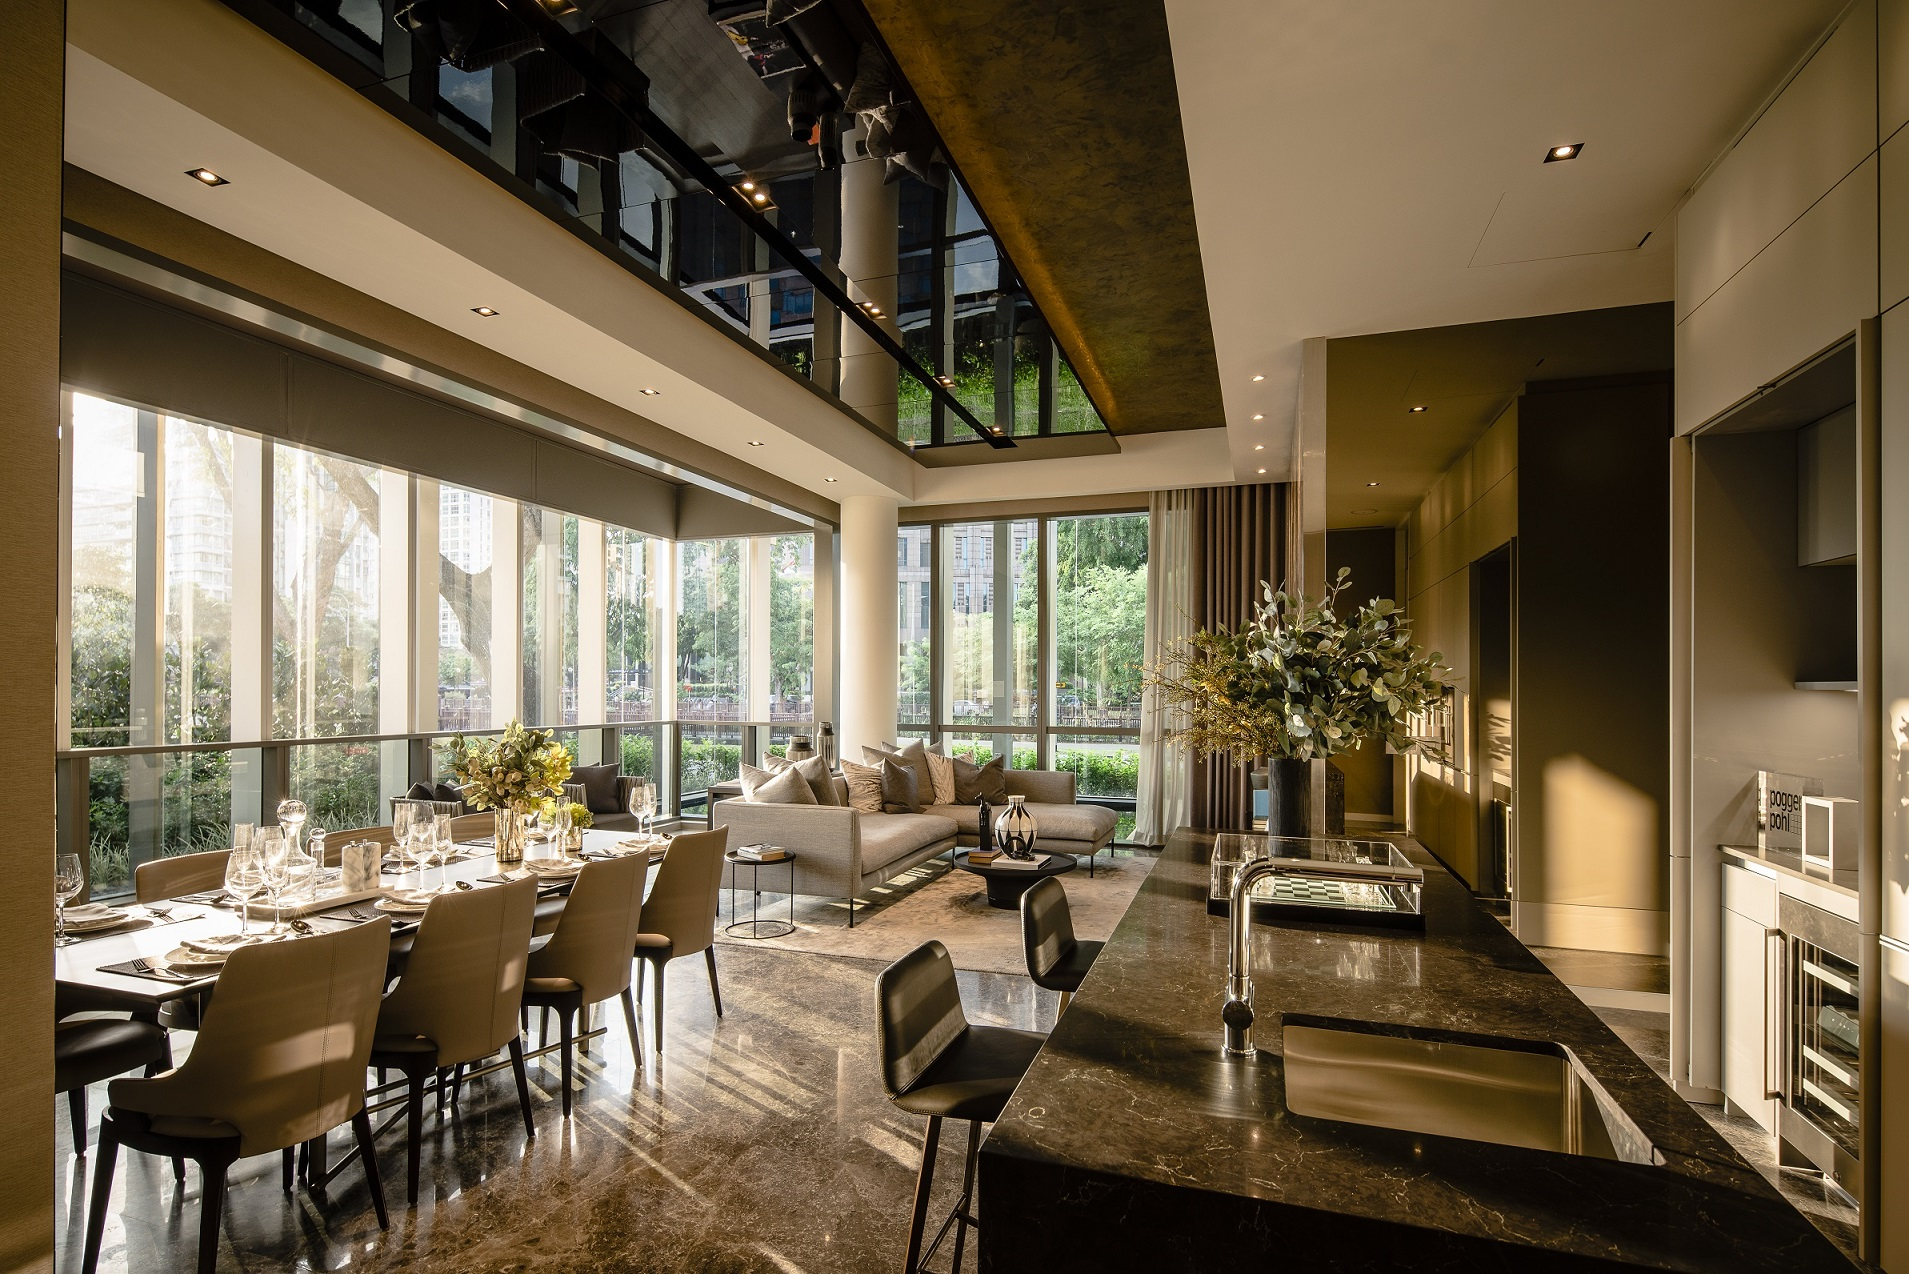 PETER TAY - Showflat of a luxurious four-bedroom unit at Riviere designed by Tay  - EDGEPROP SINGAPORE